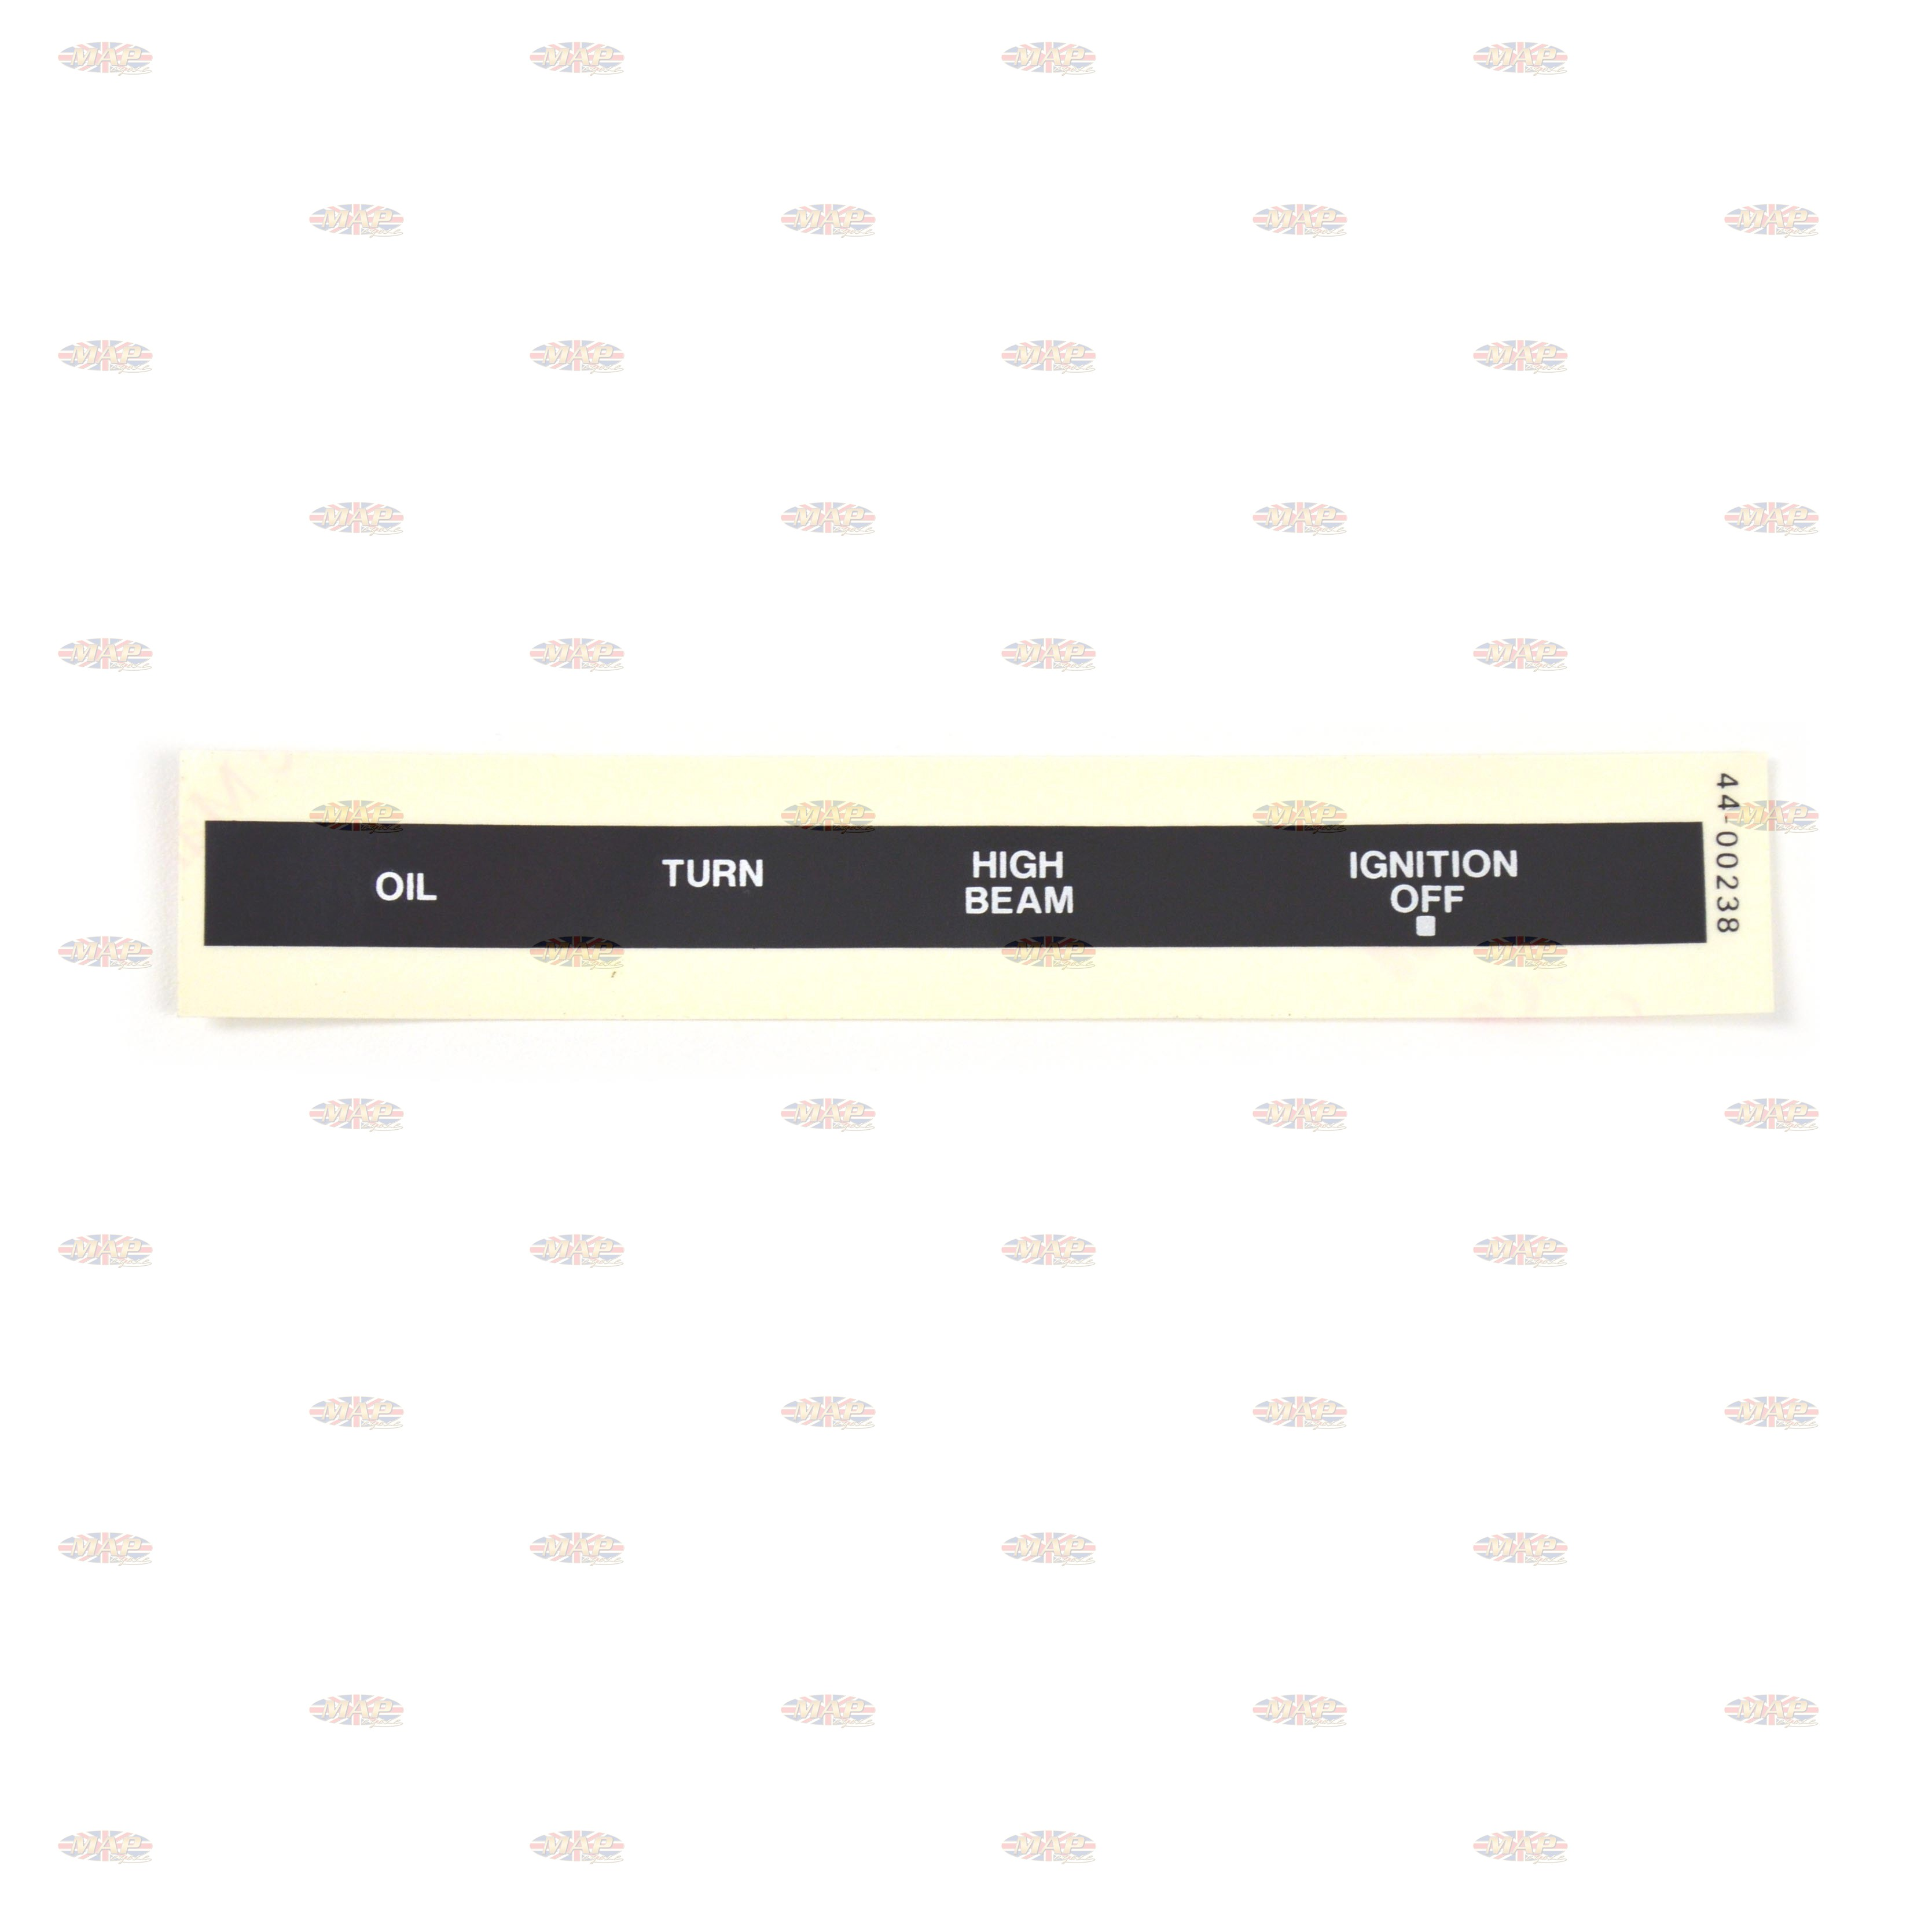 DECAL/ OIL-HI BEAM-TURN-IGN OFF 60-7004